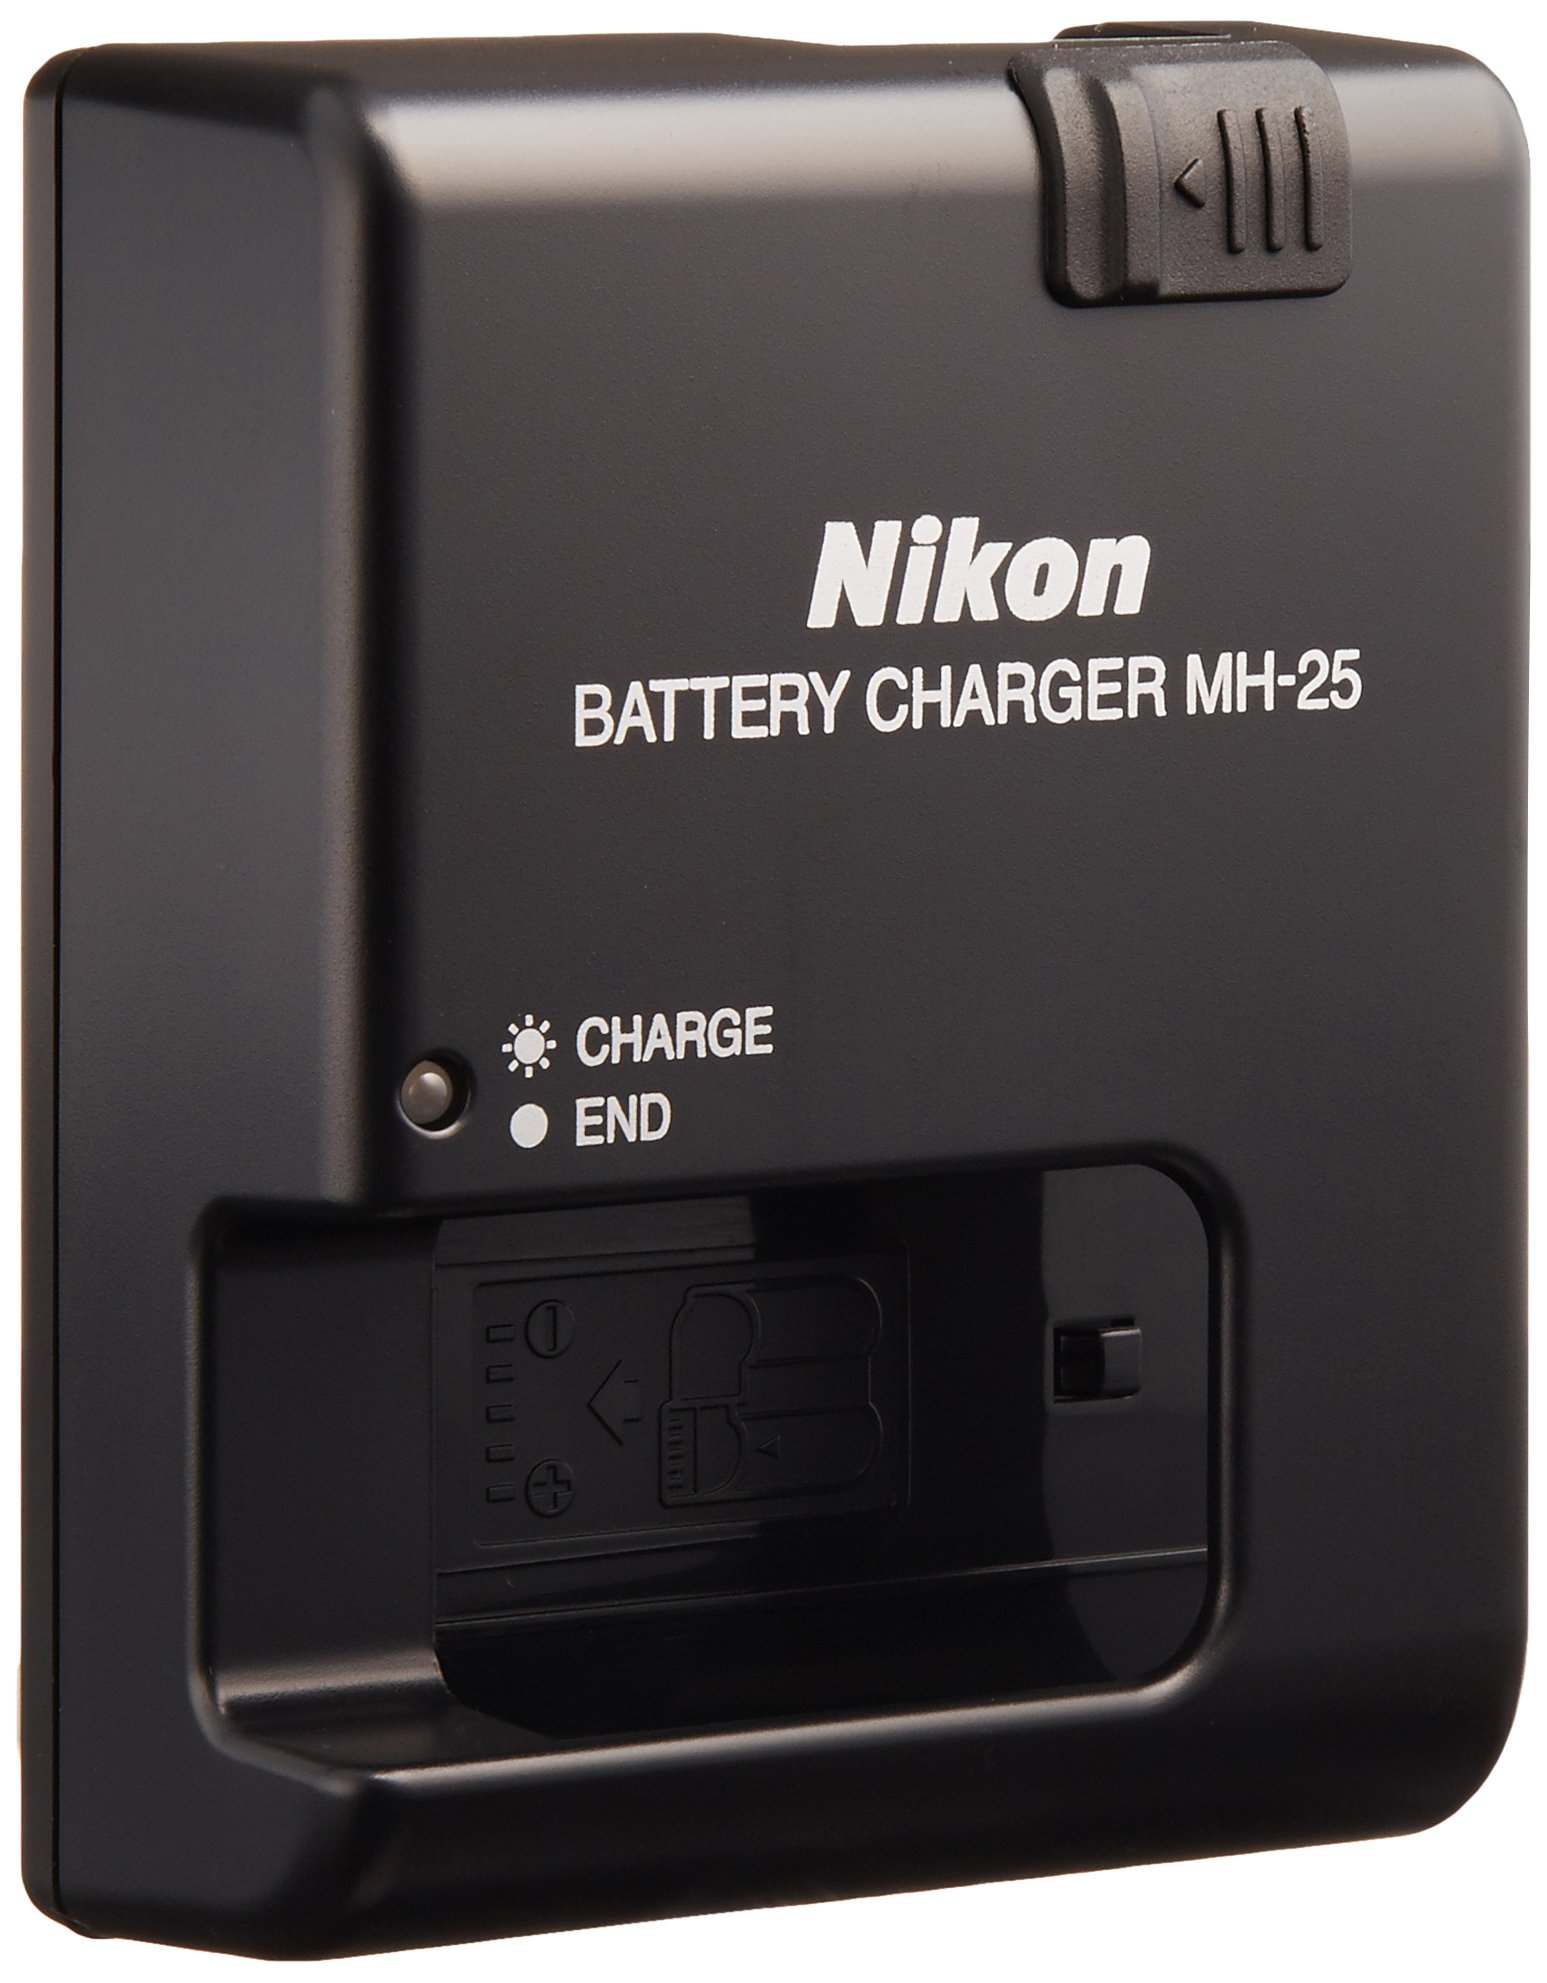 Nikon MH-25 Quick Charger for EN-EL15 Li-ion Battery compatible with Nikon D7000 and V1 Digital Cameras by Nikon